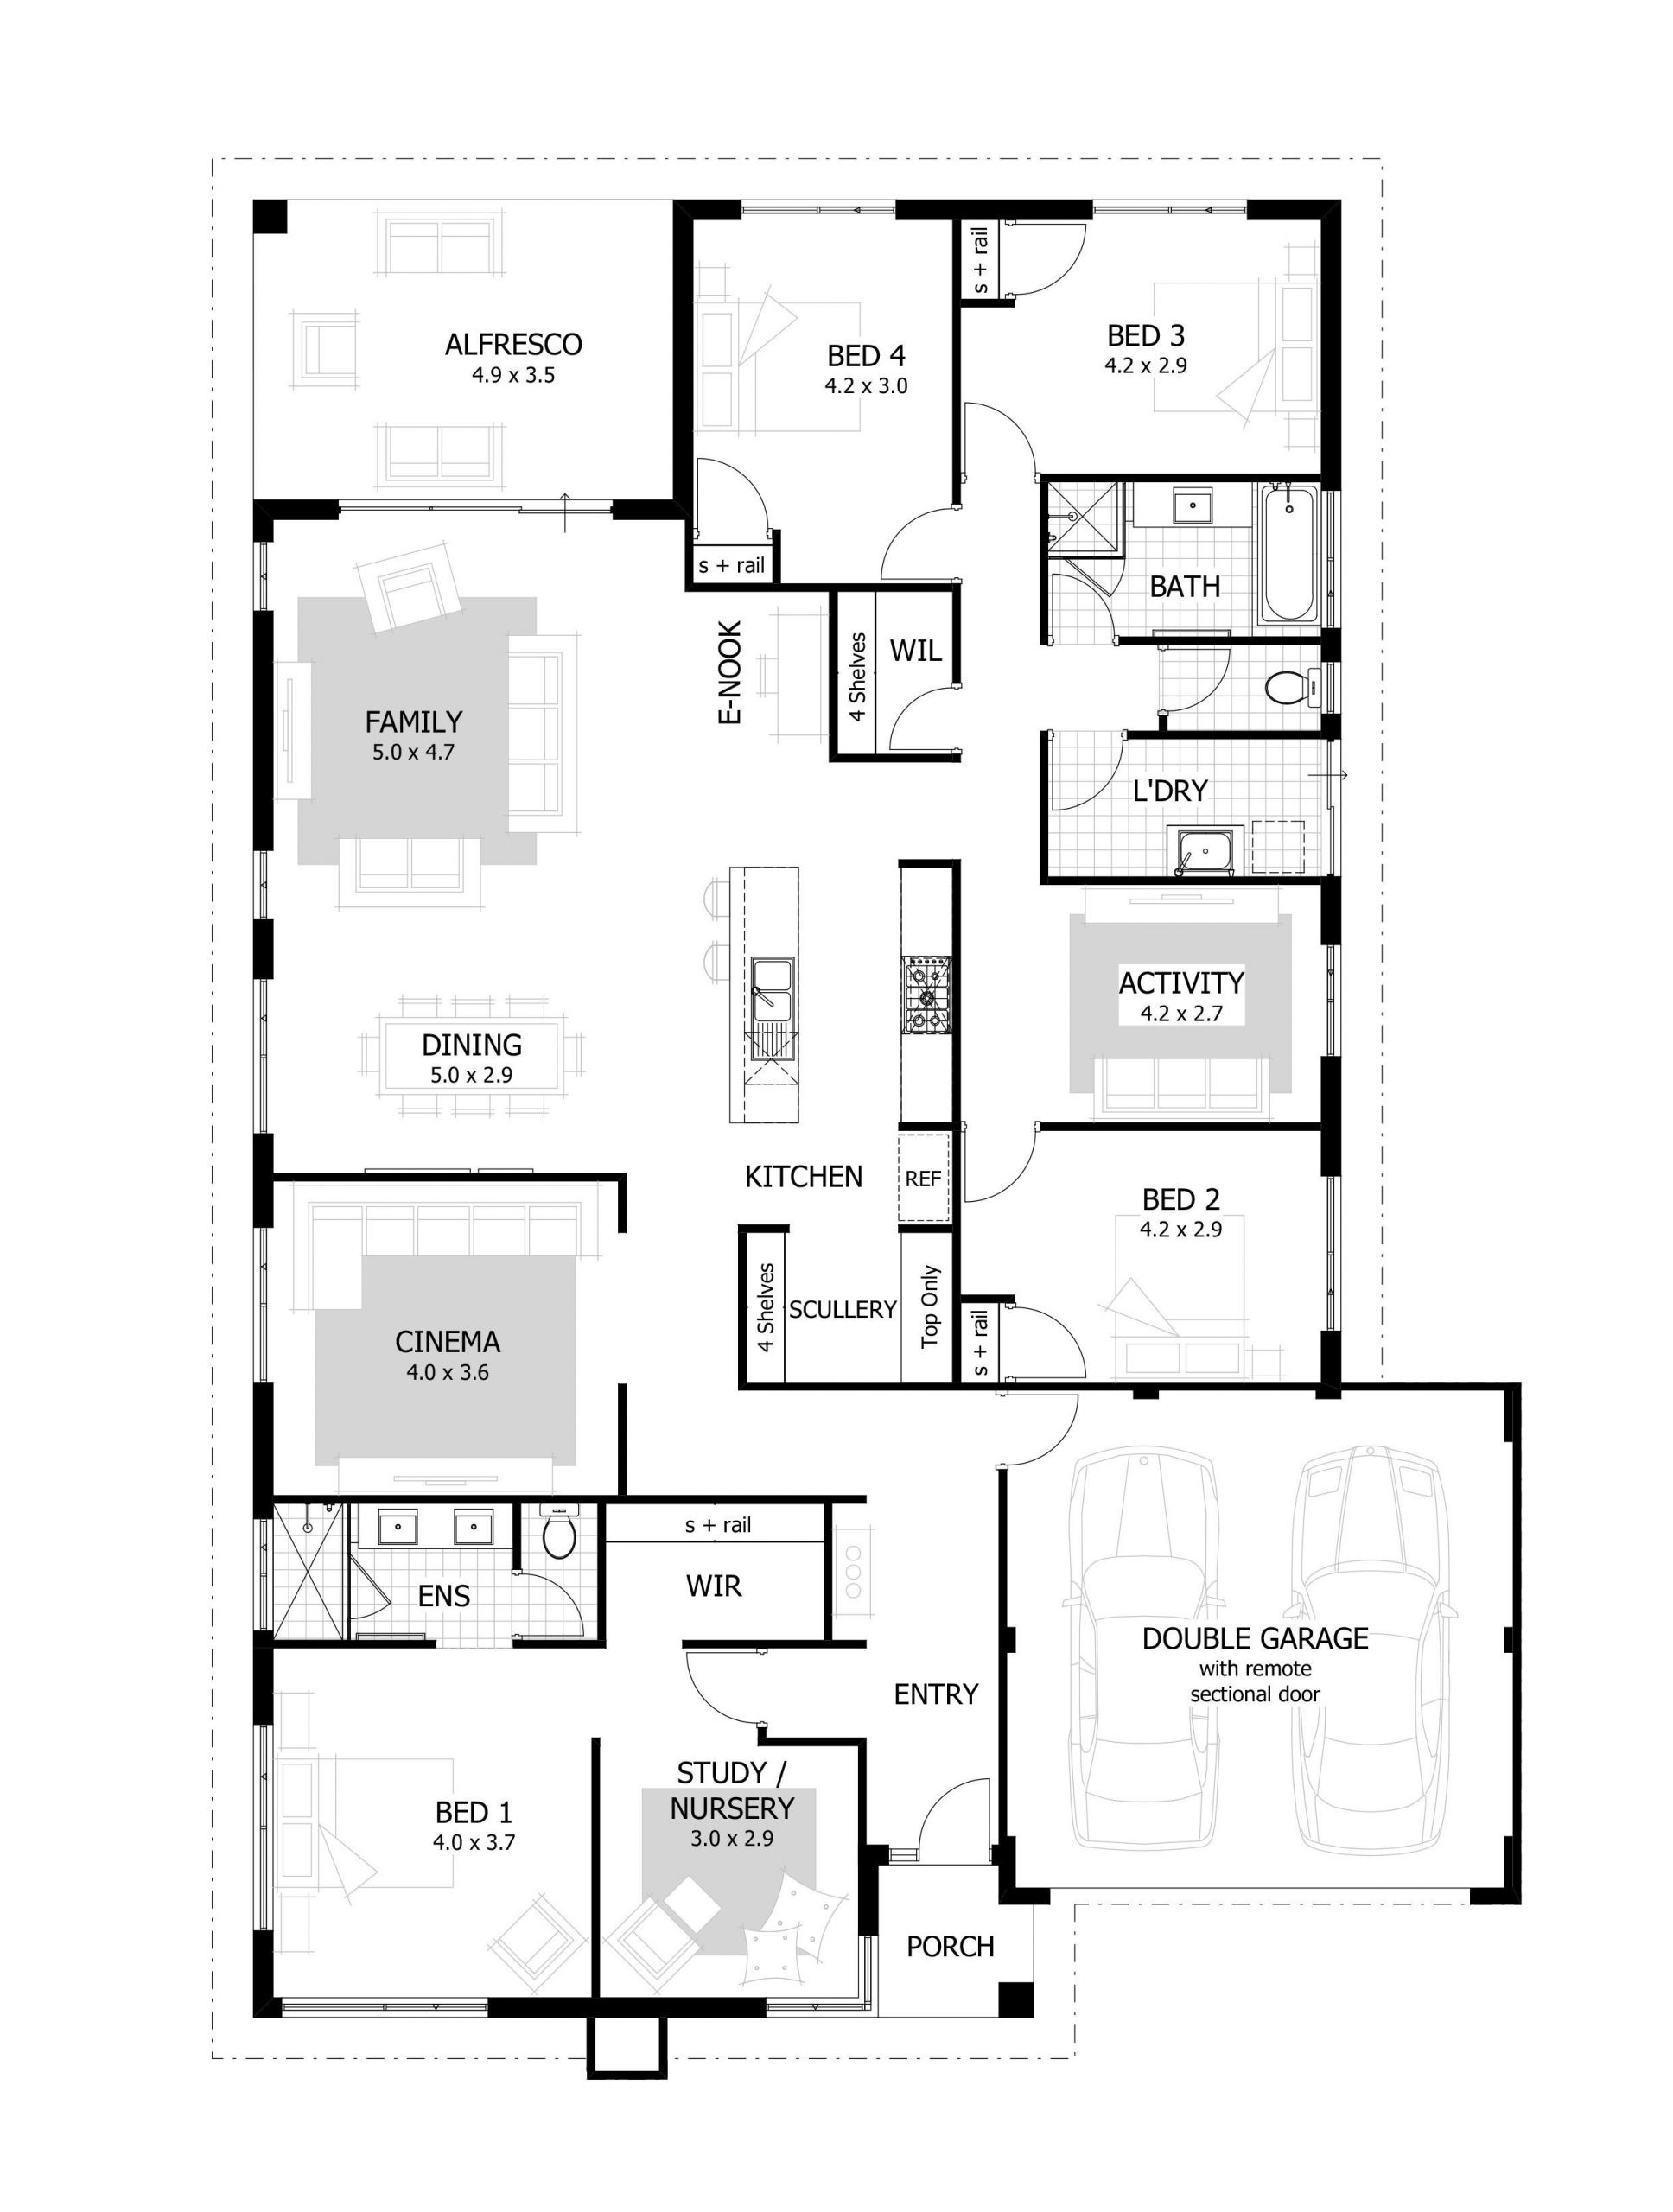 4 bedroom house plans and home designs celebration homes collection of solutions for retirement home design plans cover of retirement home design plans scaled